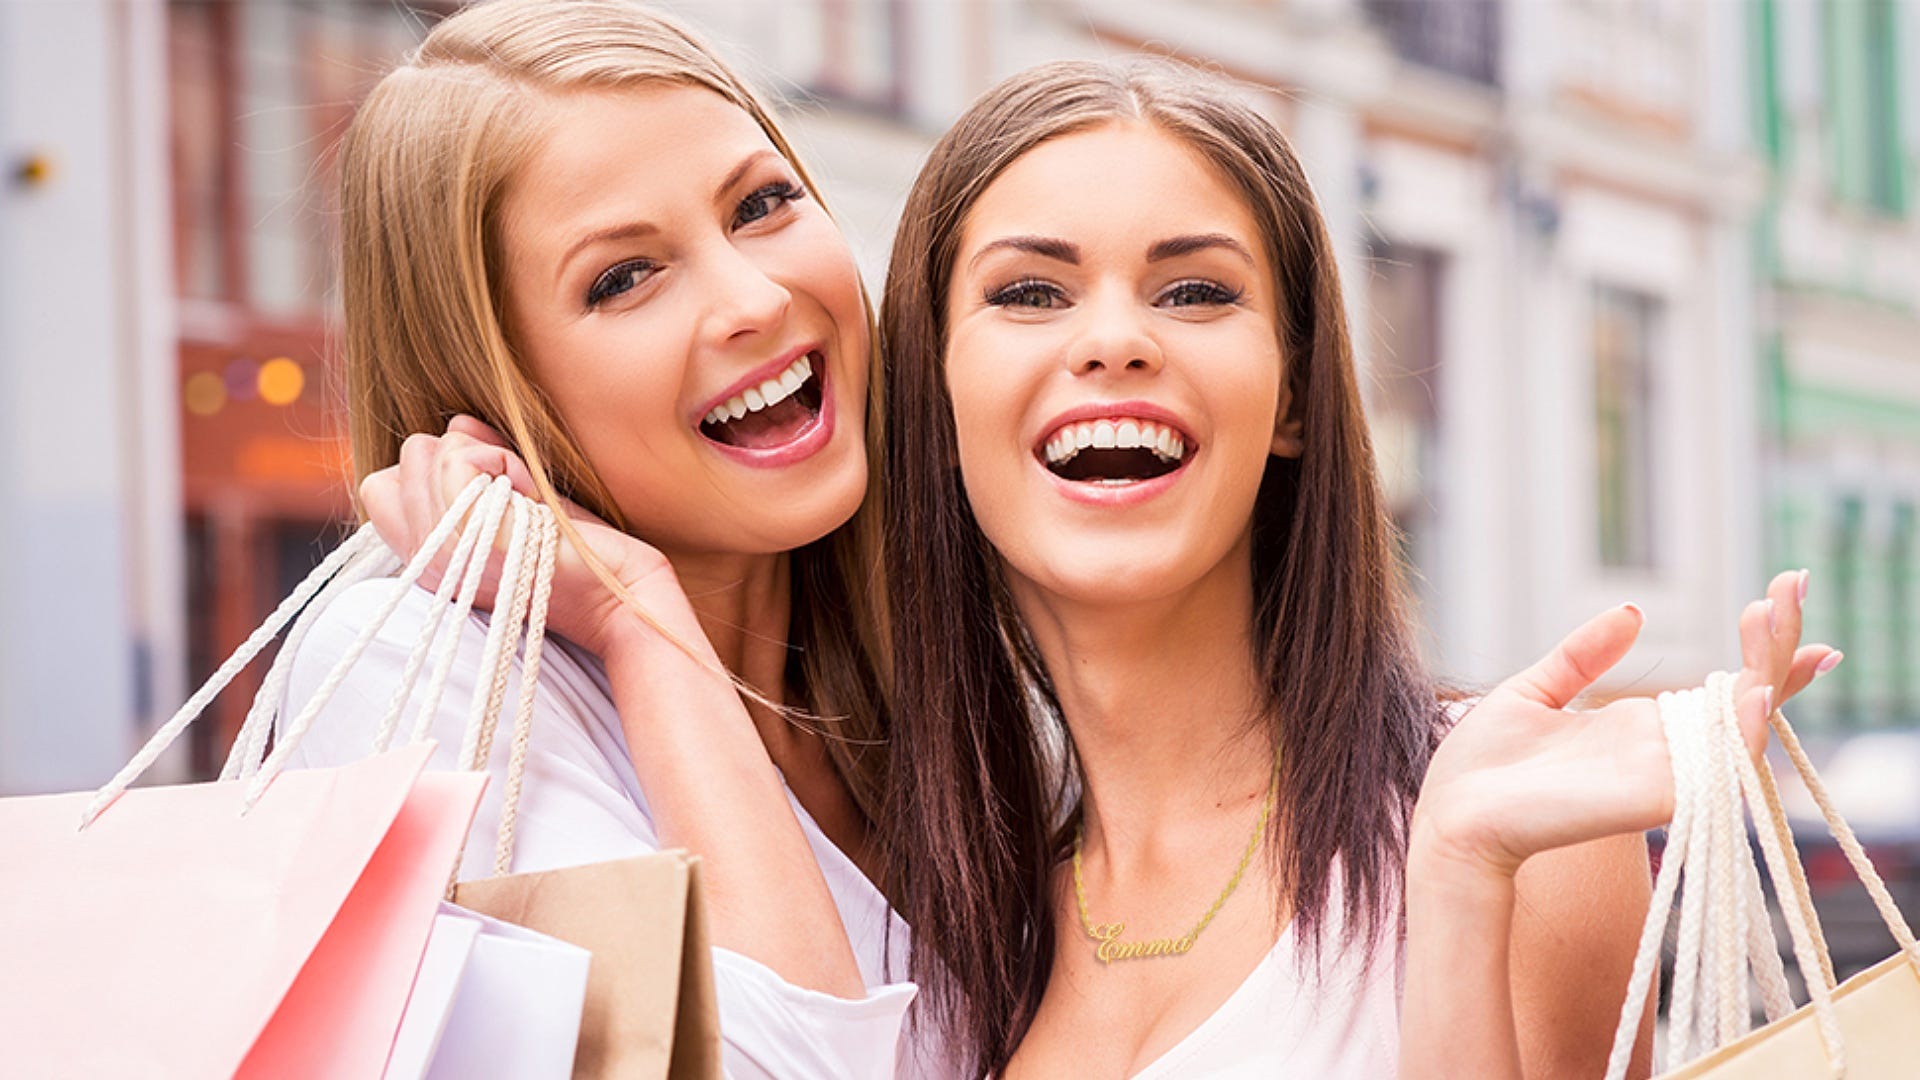 Two smiling girlfriends are out shopping and wearing name necklaces.